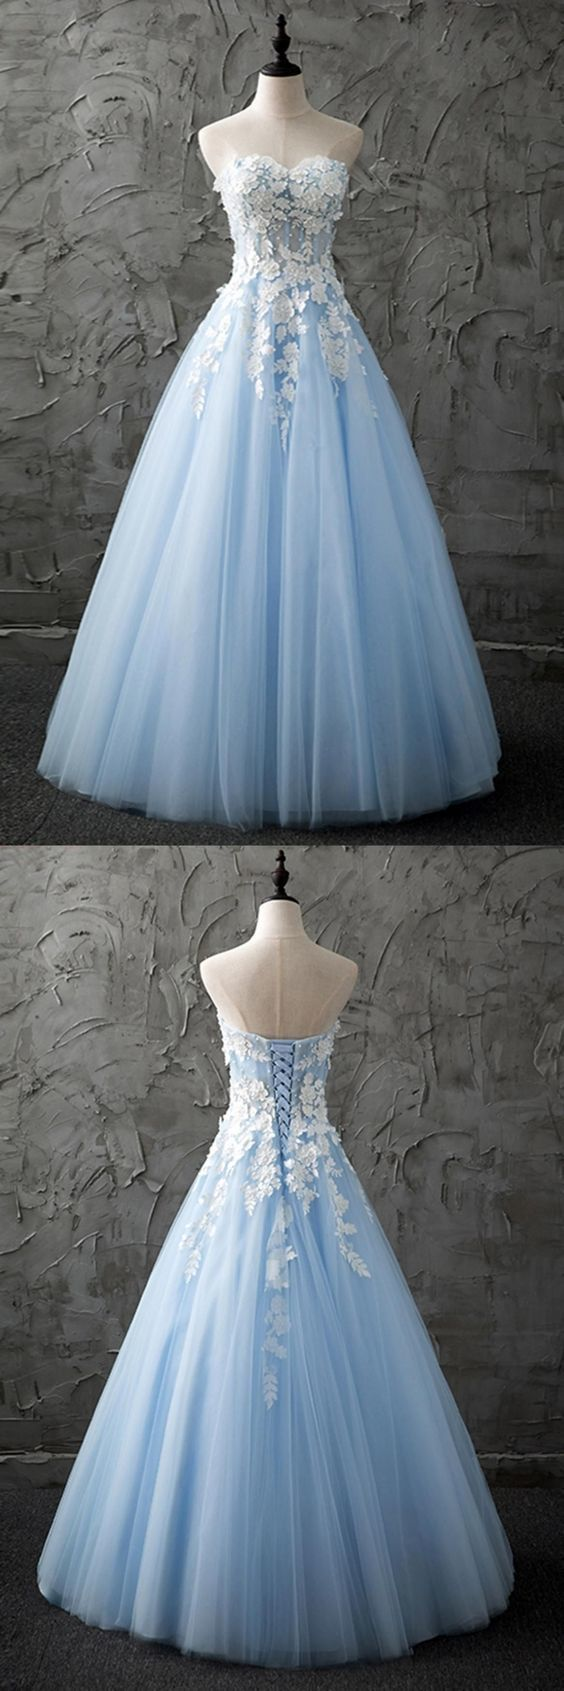 light blue sleeveless strapless prom dress,tulle applique lace sweetheart